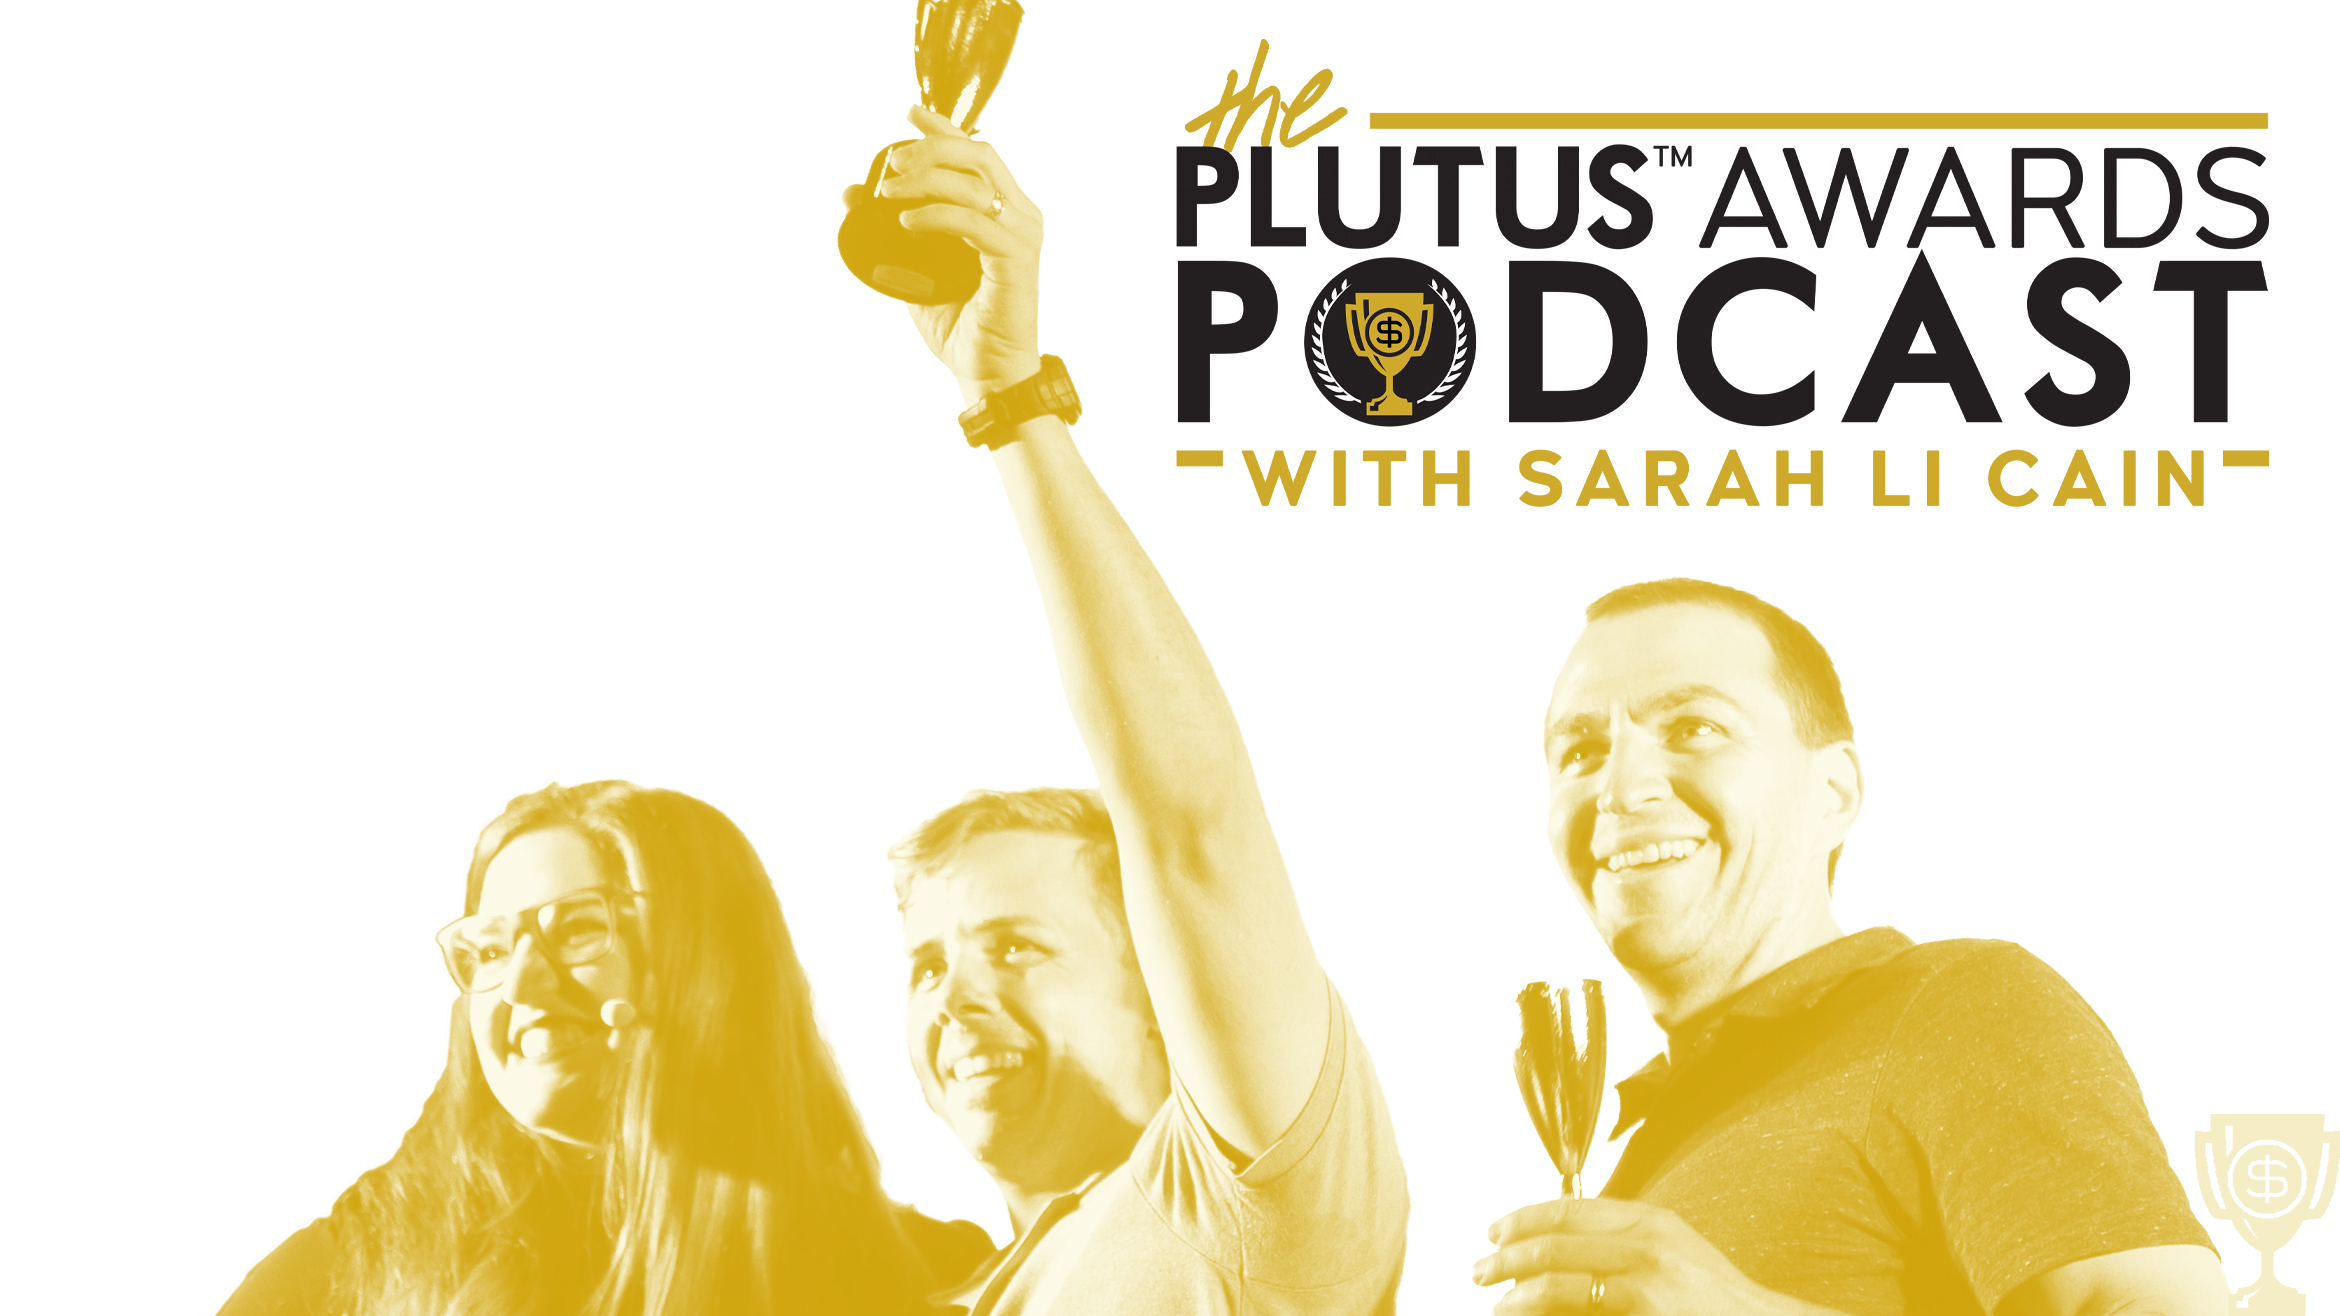 Plutus Awards Podcast With Sarah Li Cain Header